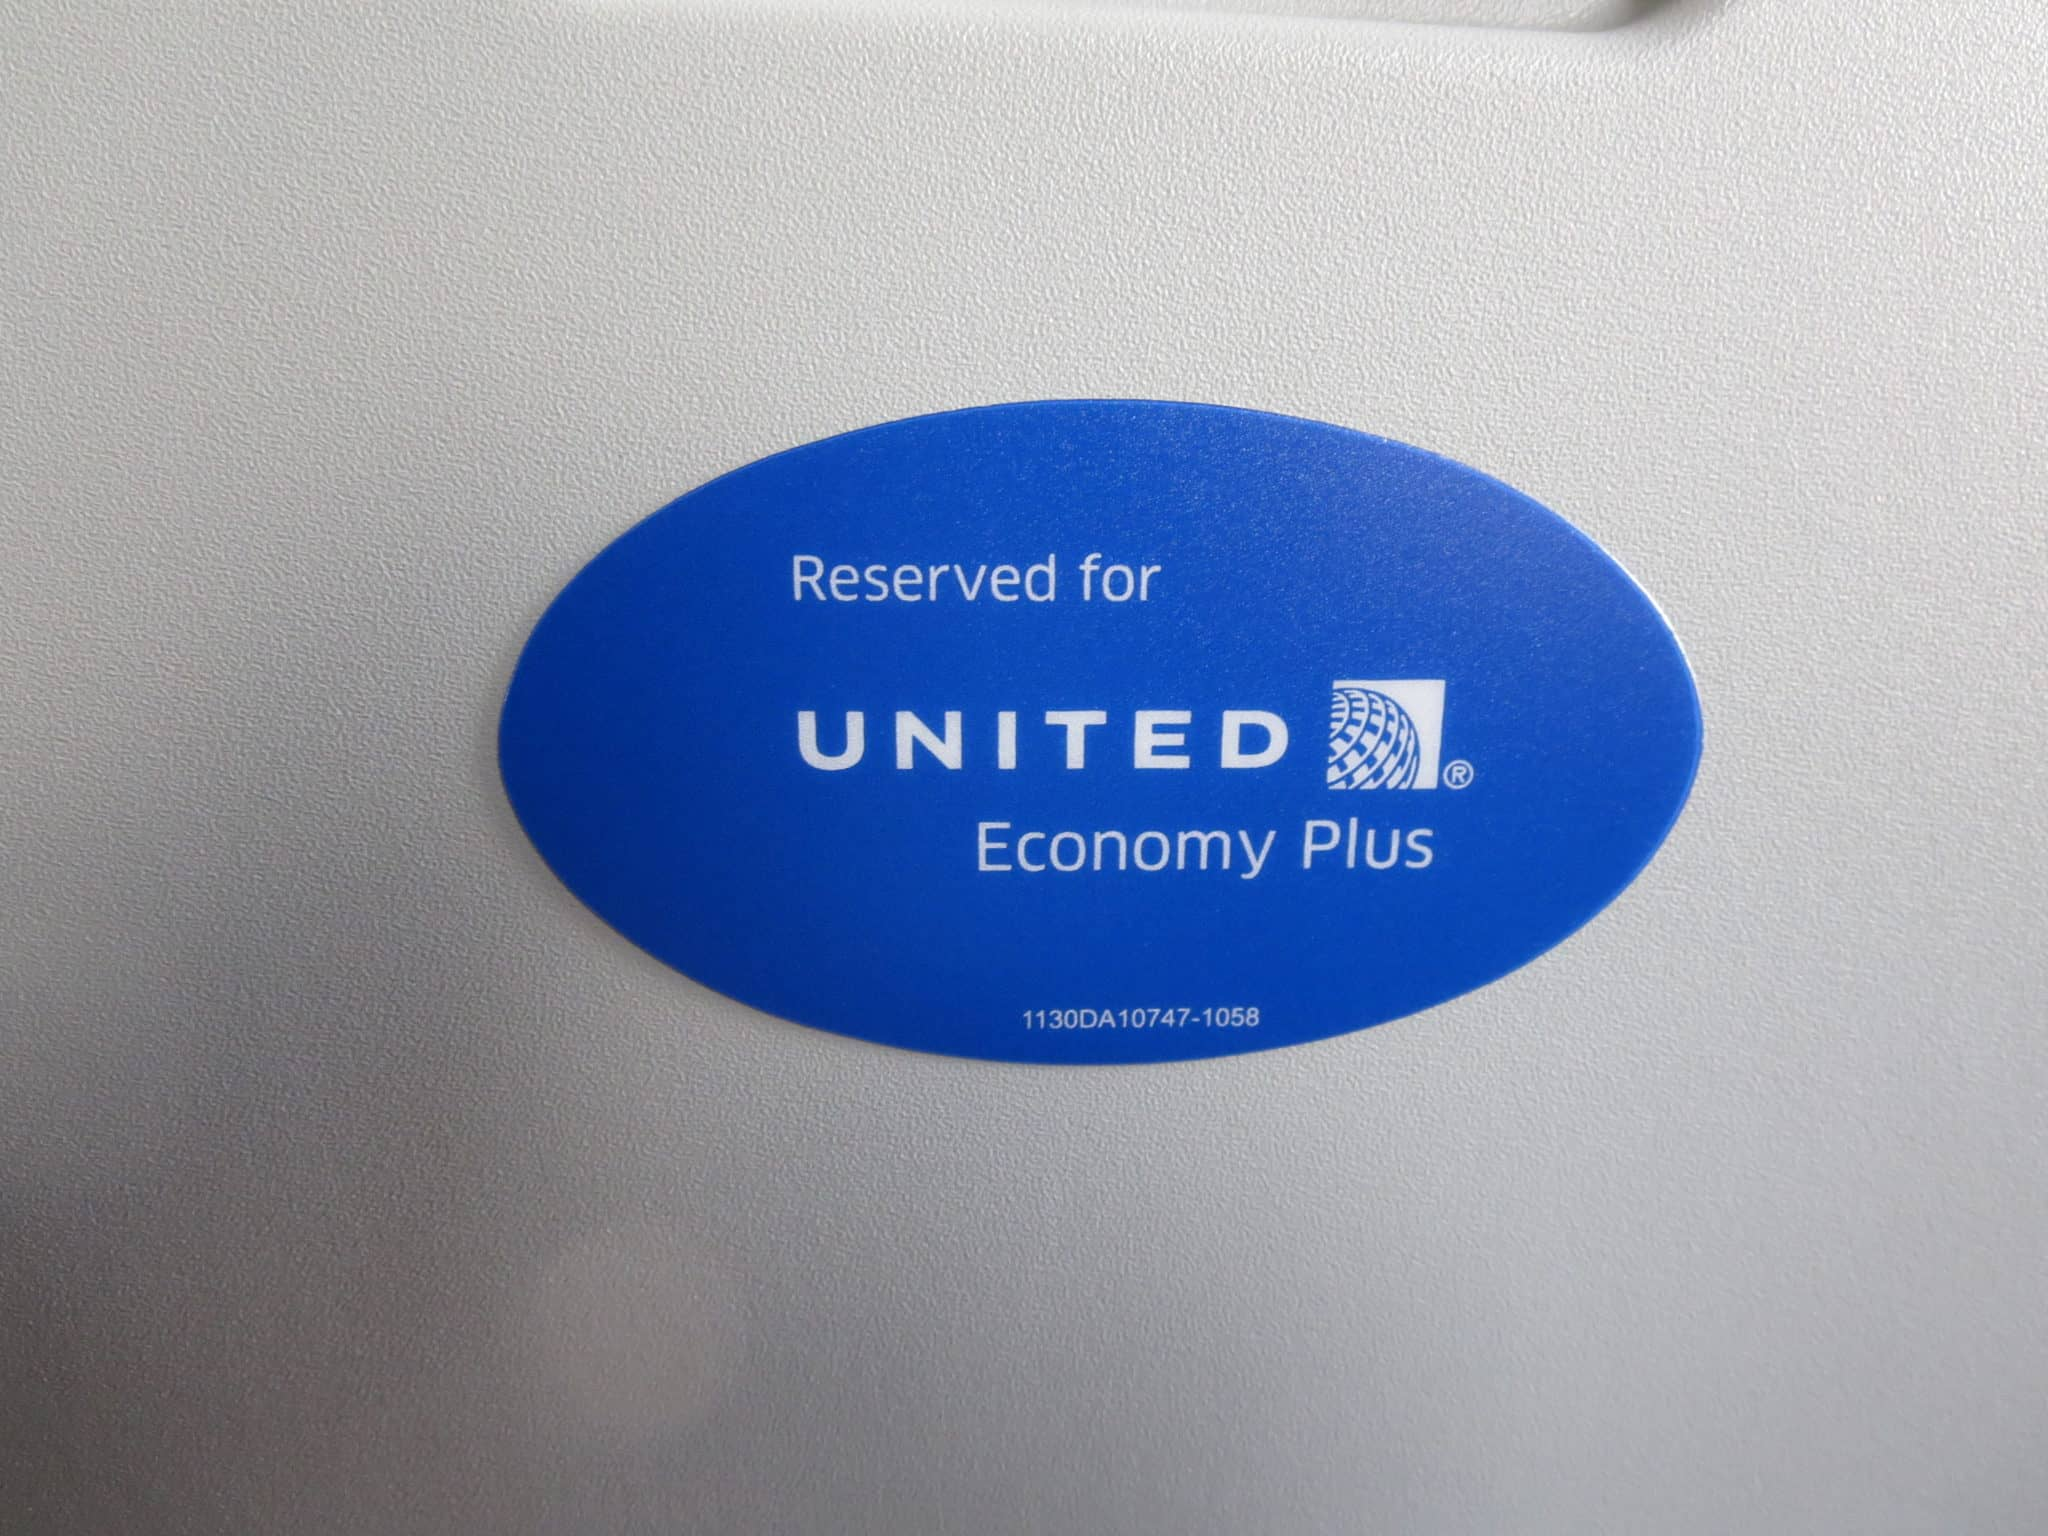 United Island Hopper Economy Plus